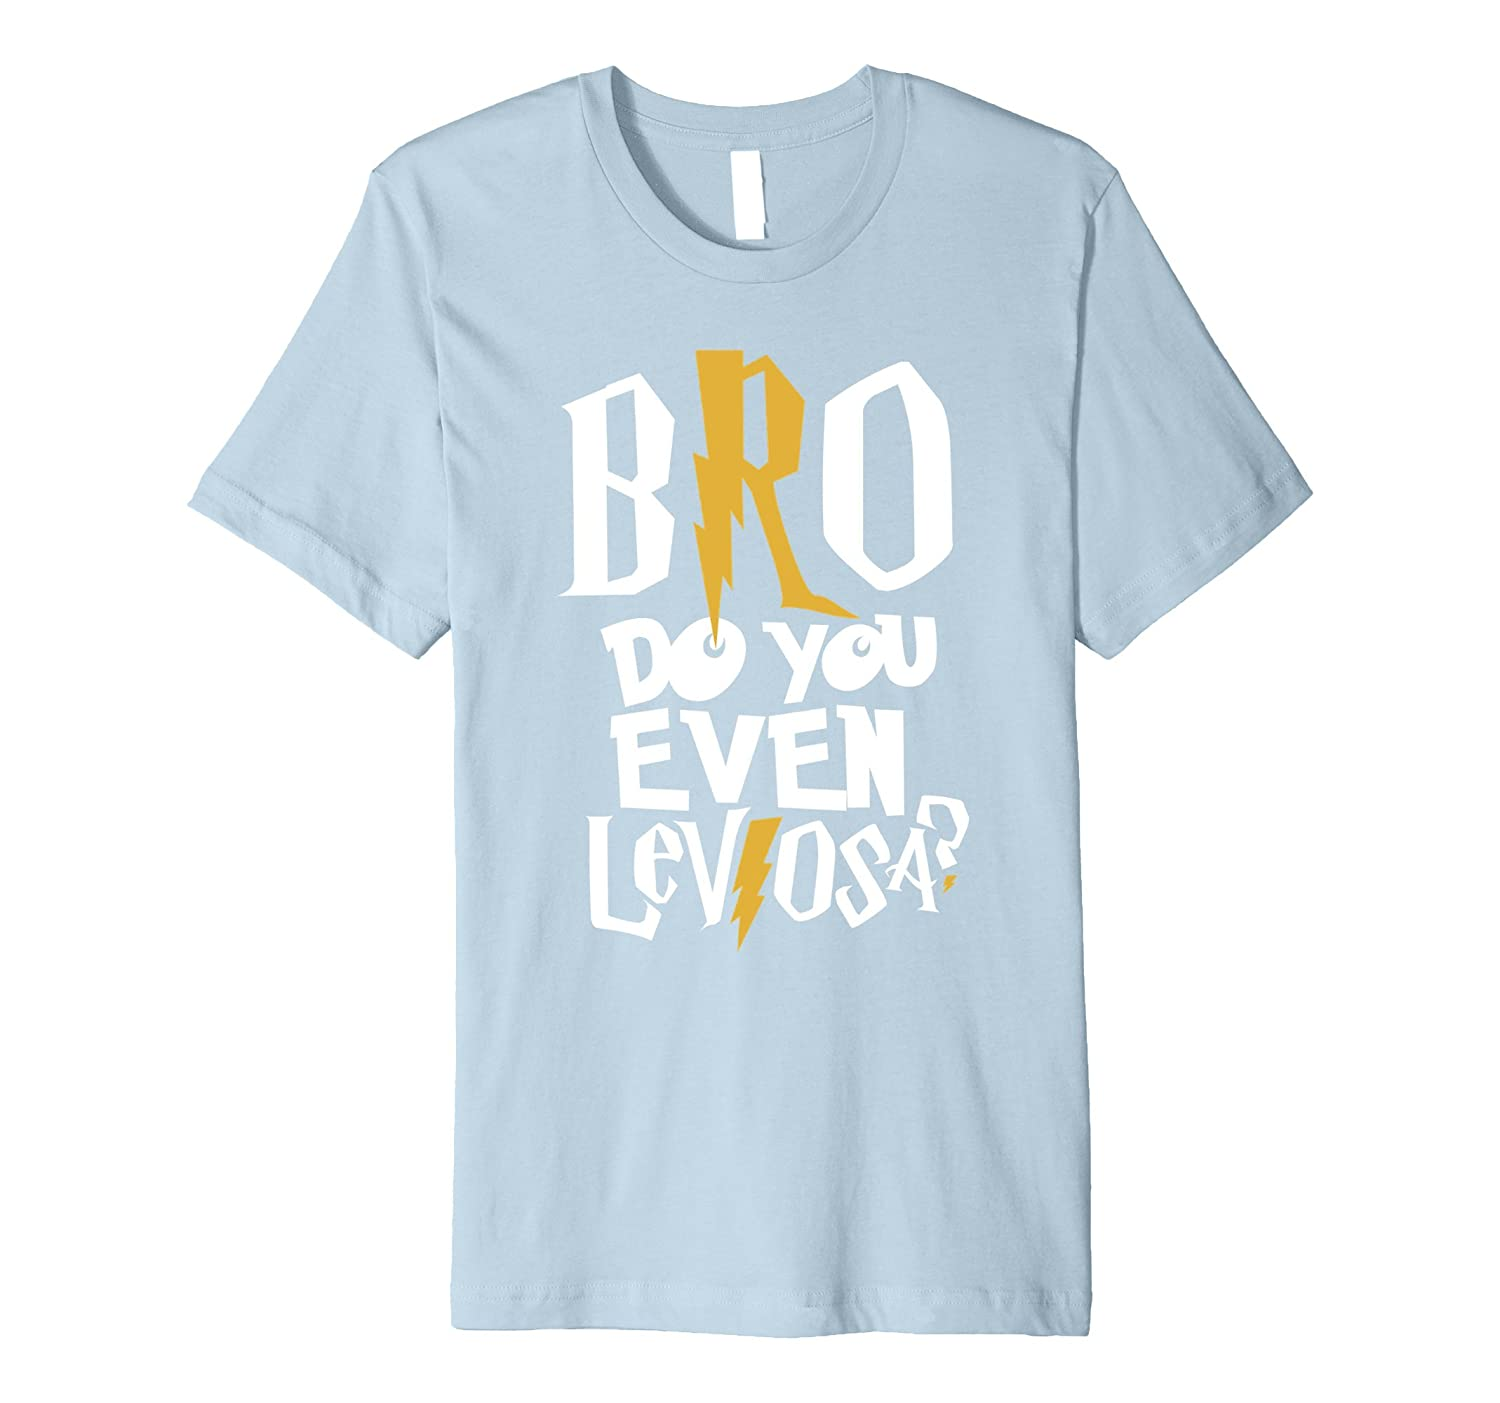 Bro Do You Even LeviosA White Premium 2 Funny T-shirt